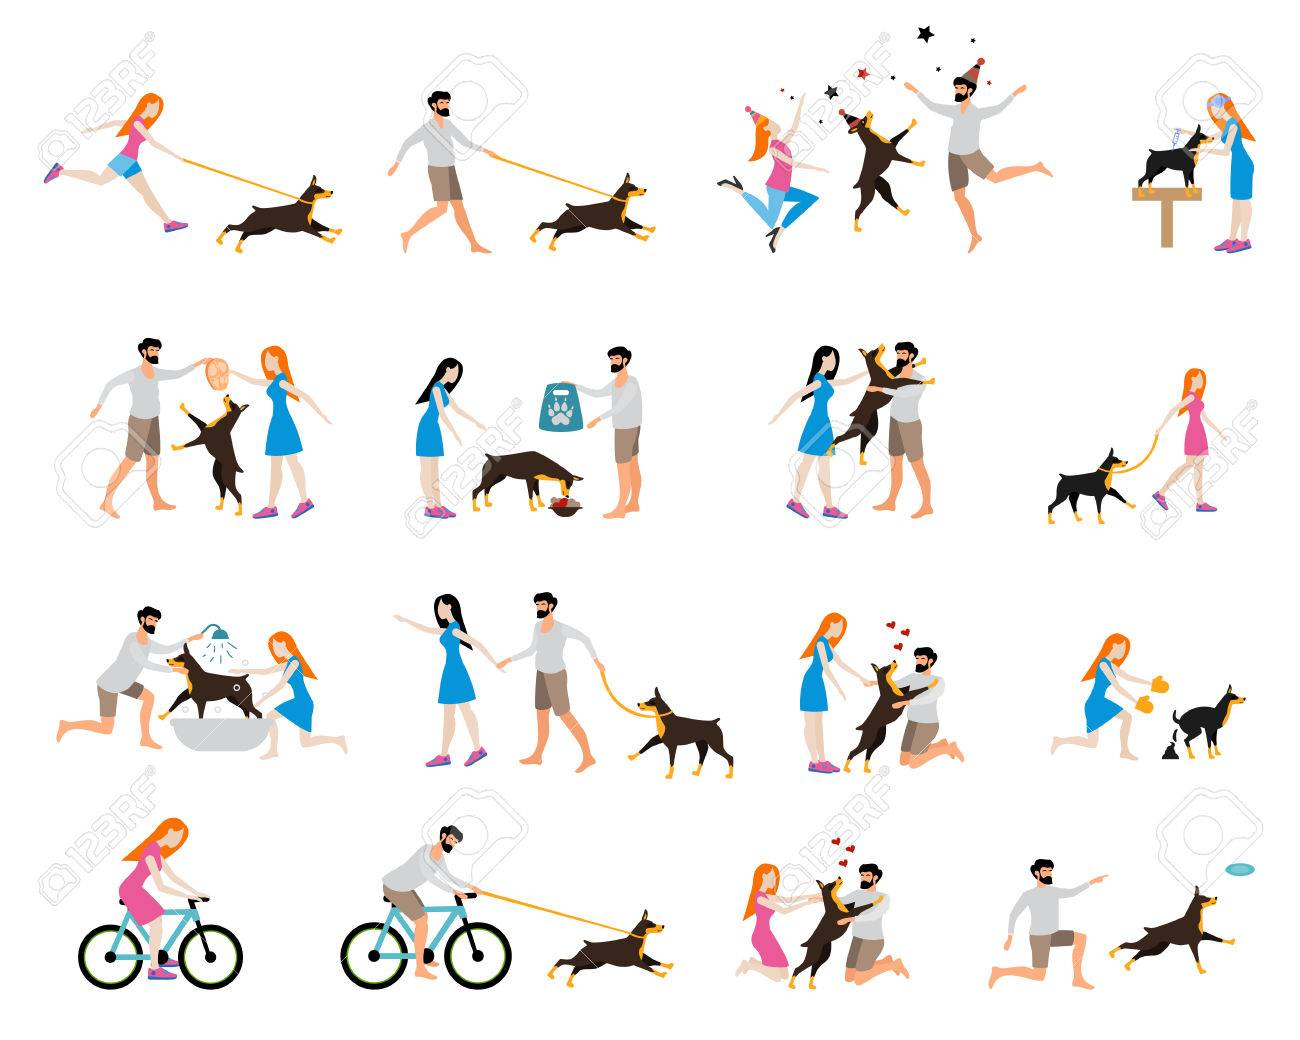 Professional dog walking. Caring for a dog doberman, washing the dog, clean up the excrements, feeding, playing and walking, cycling with a dog. Girl to train and care for a dog. Flat style. - 54326409